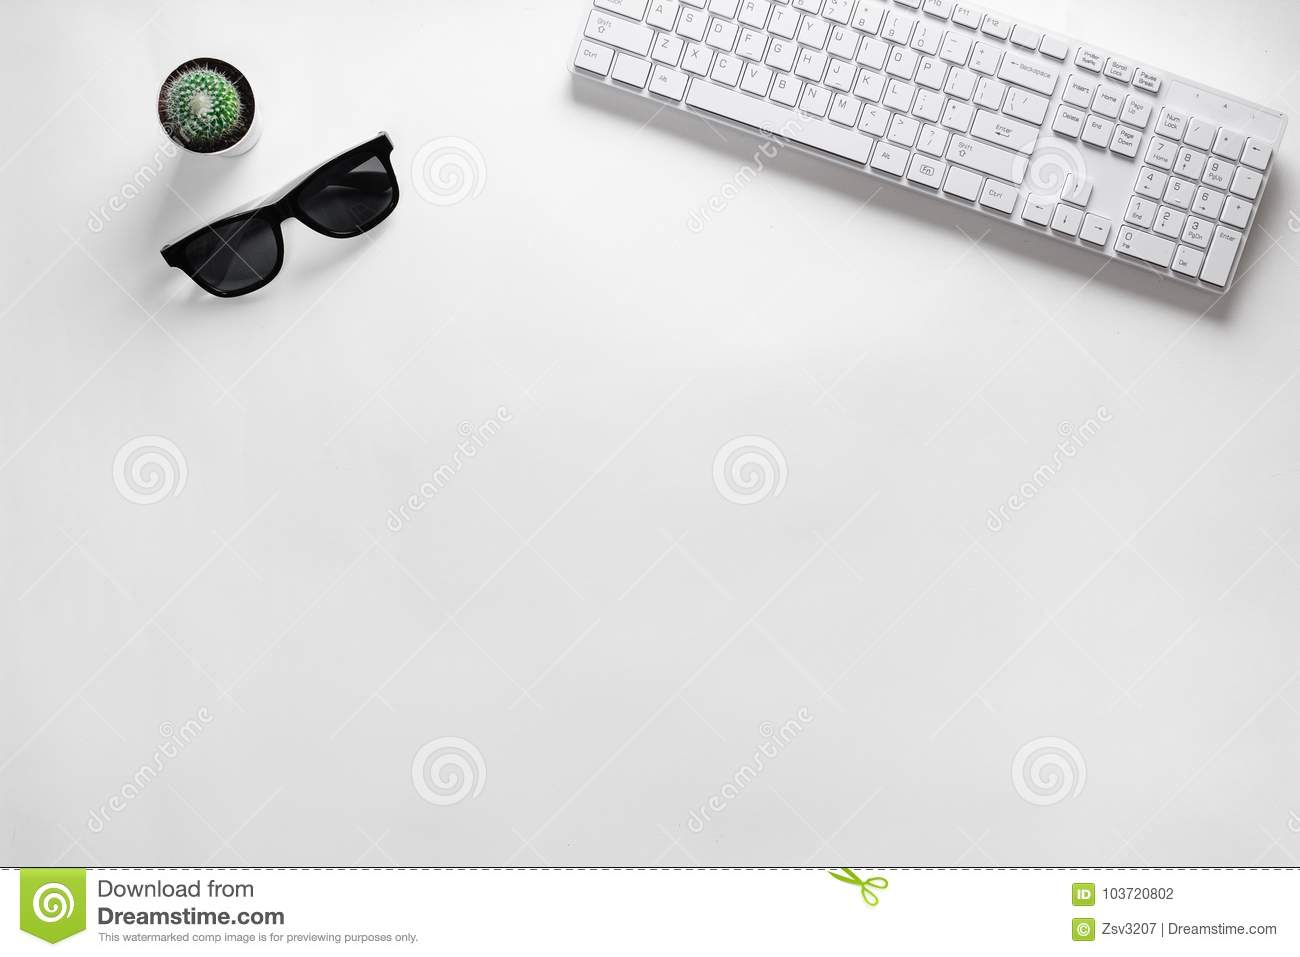 Modern white office desk table with desktop computer, cactus and eyeglasses. Top view with copy space, flat lay